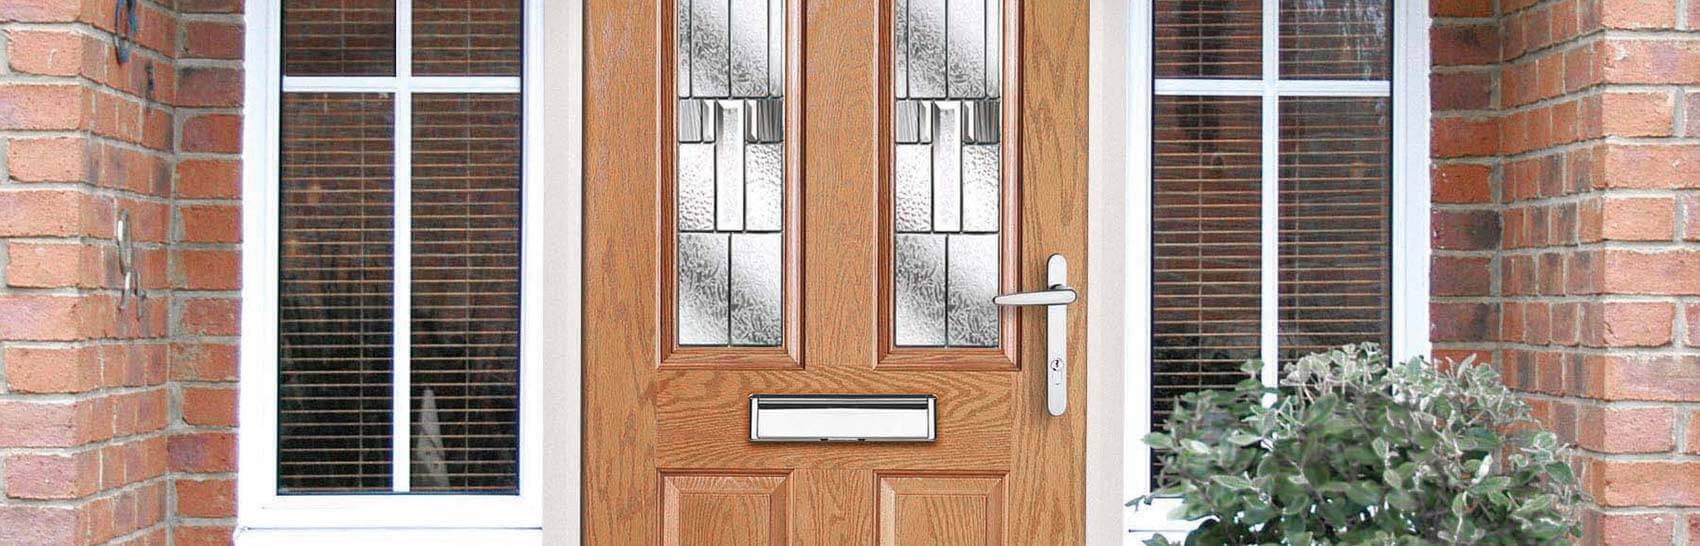 Security entrance gate glazed decorative security entrance doors - A Green Entrance Door With Traditional Design And Decorative Glass Front Door In Oak Woodgrain Colour With Chrome Handle And Letterplate